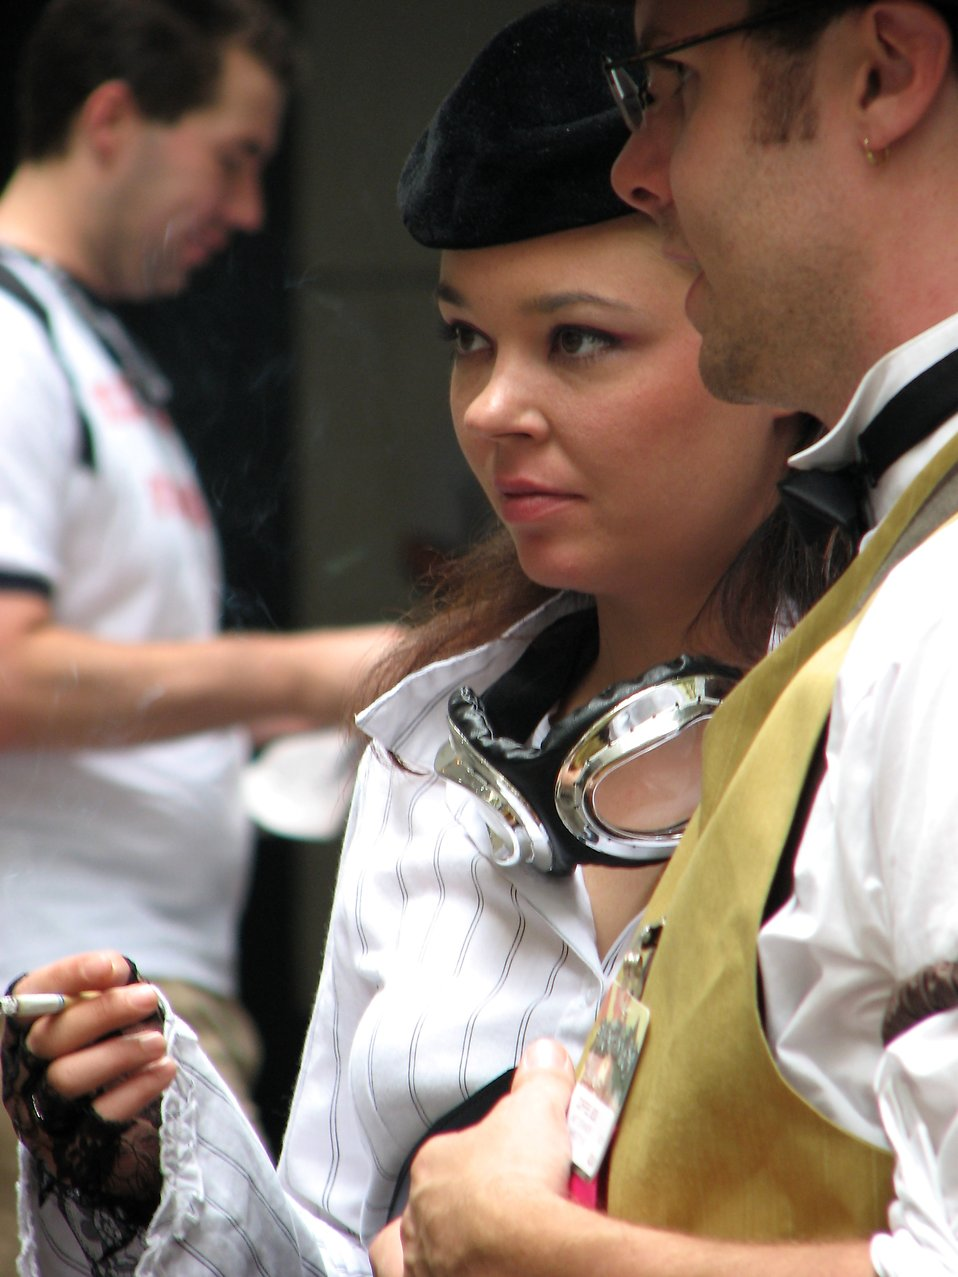 Closeup of a beautiful woman and man in costumes at Dragoncon 2008 : Free Stock Photo